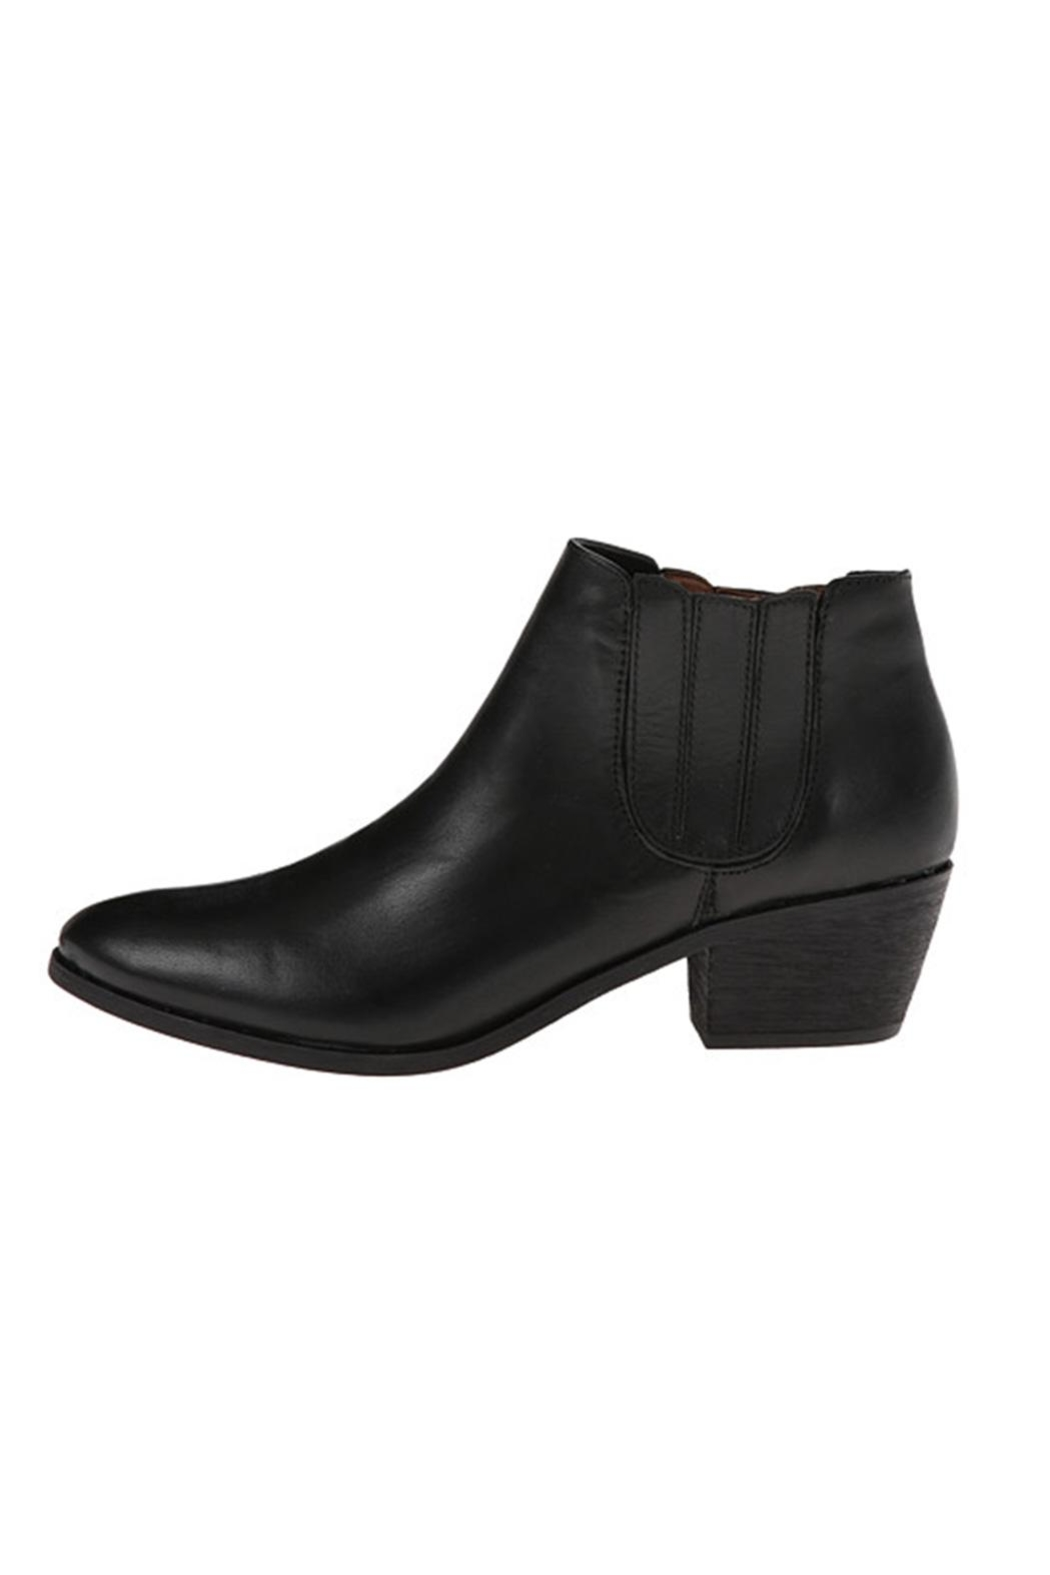 Joie Barlow Black Bootie - Front Cropped Image